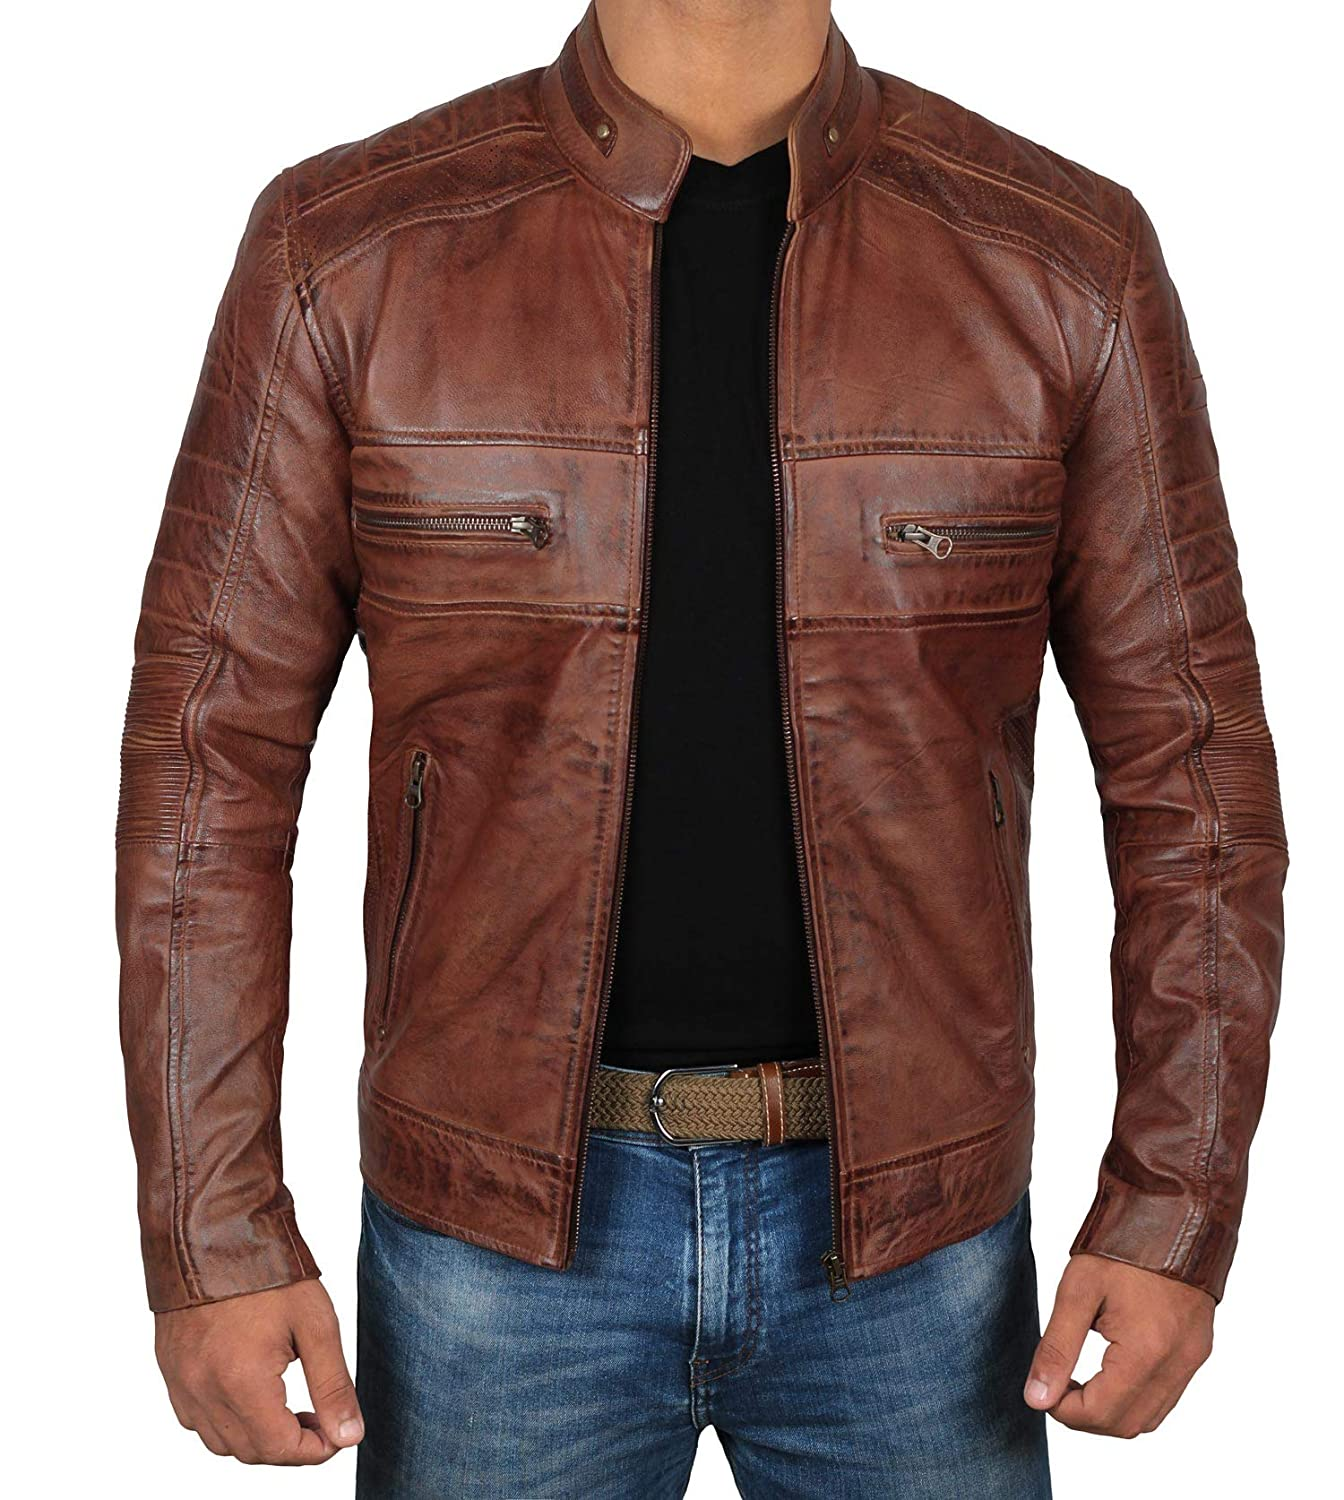 Brown Leather Jacket for Men - Distressed Genuine Black Motorcycle Leather Jackets BSO-Austin-XS